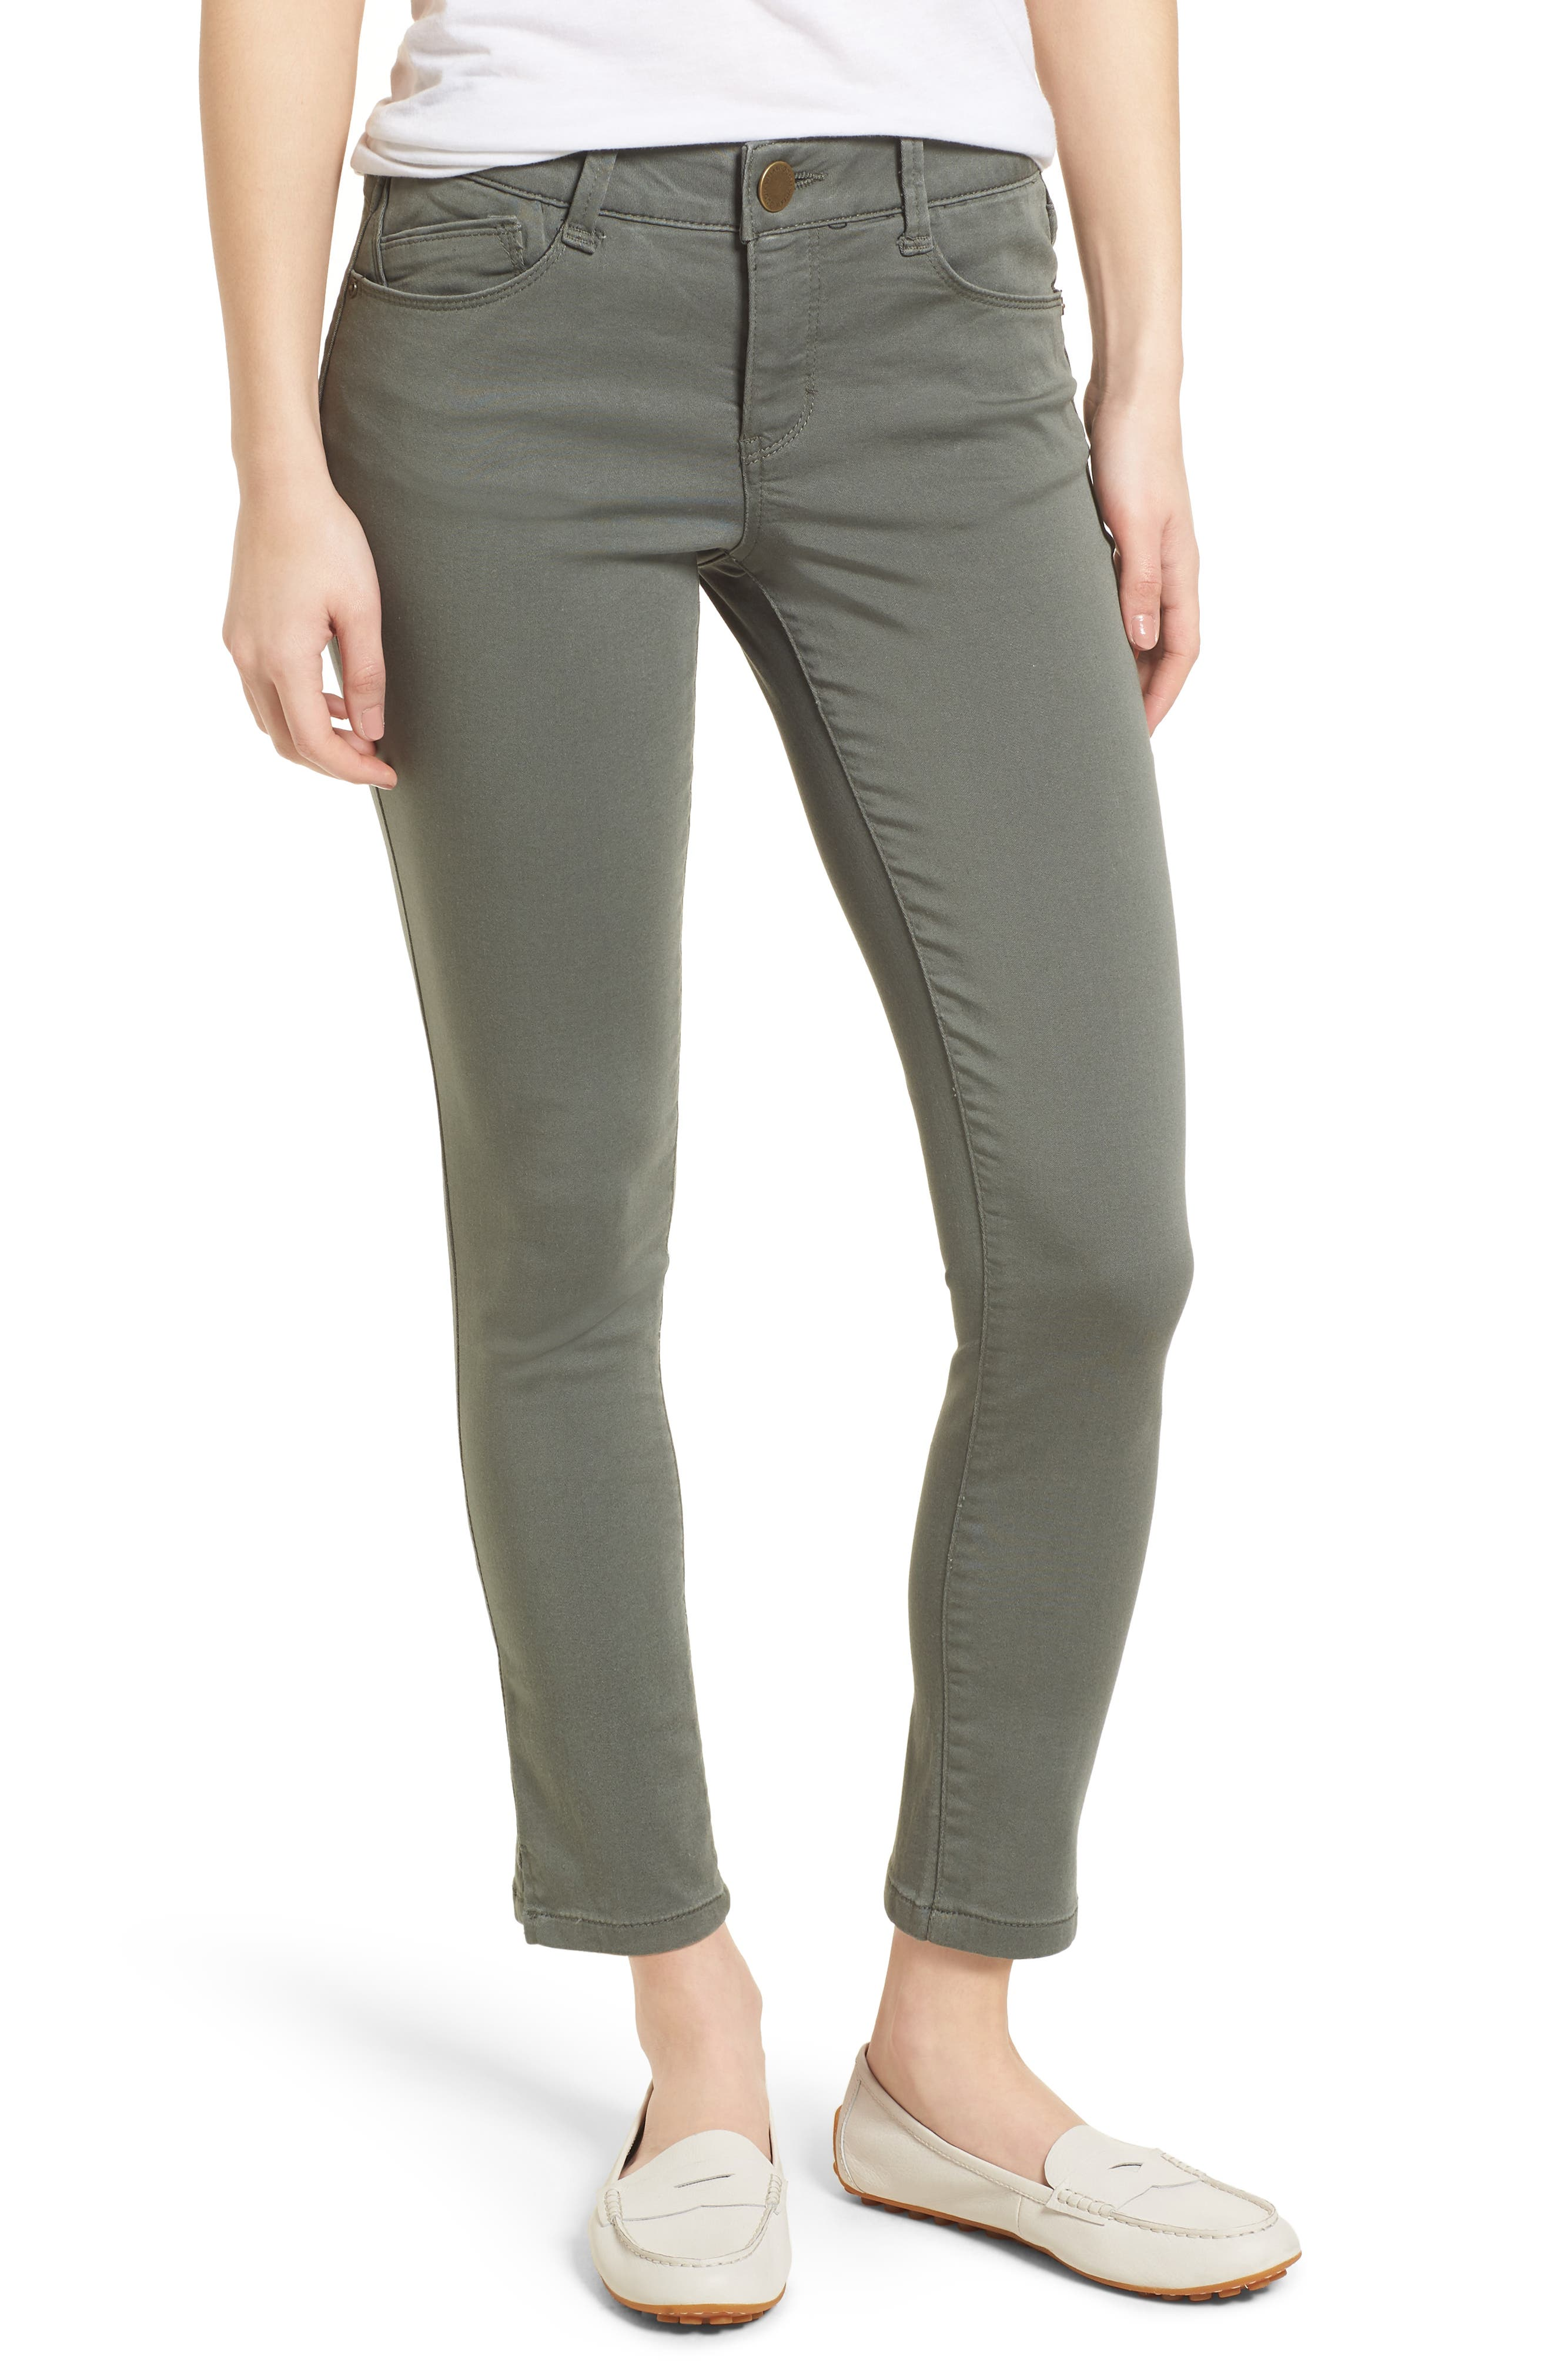 Main Image - Wit & Wisdom Ab-solution Ankle Skimmer Jeans (Regular & Petite) (Nordstrom Exclusive)